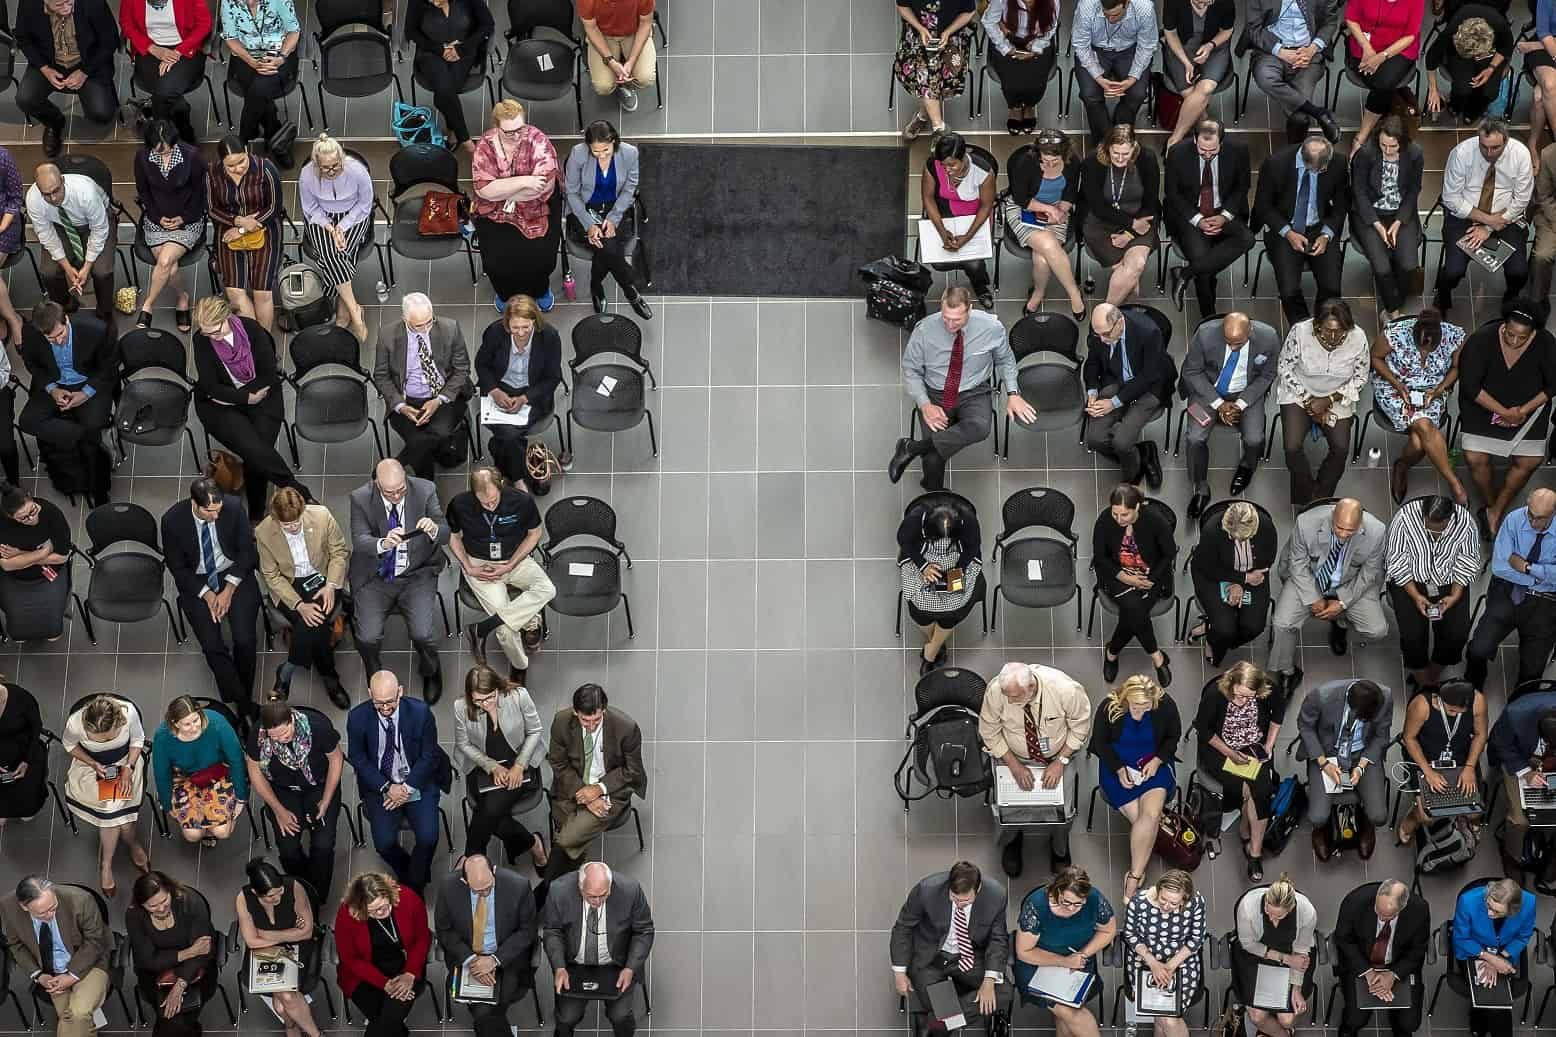 Aerial view of seated audience at a town hall.